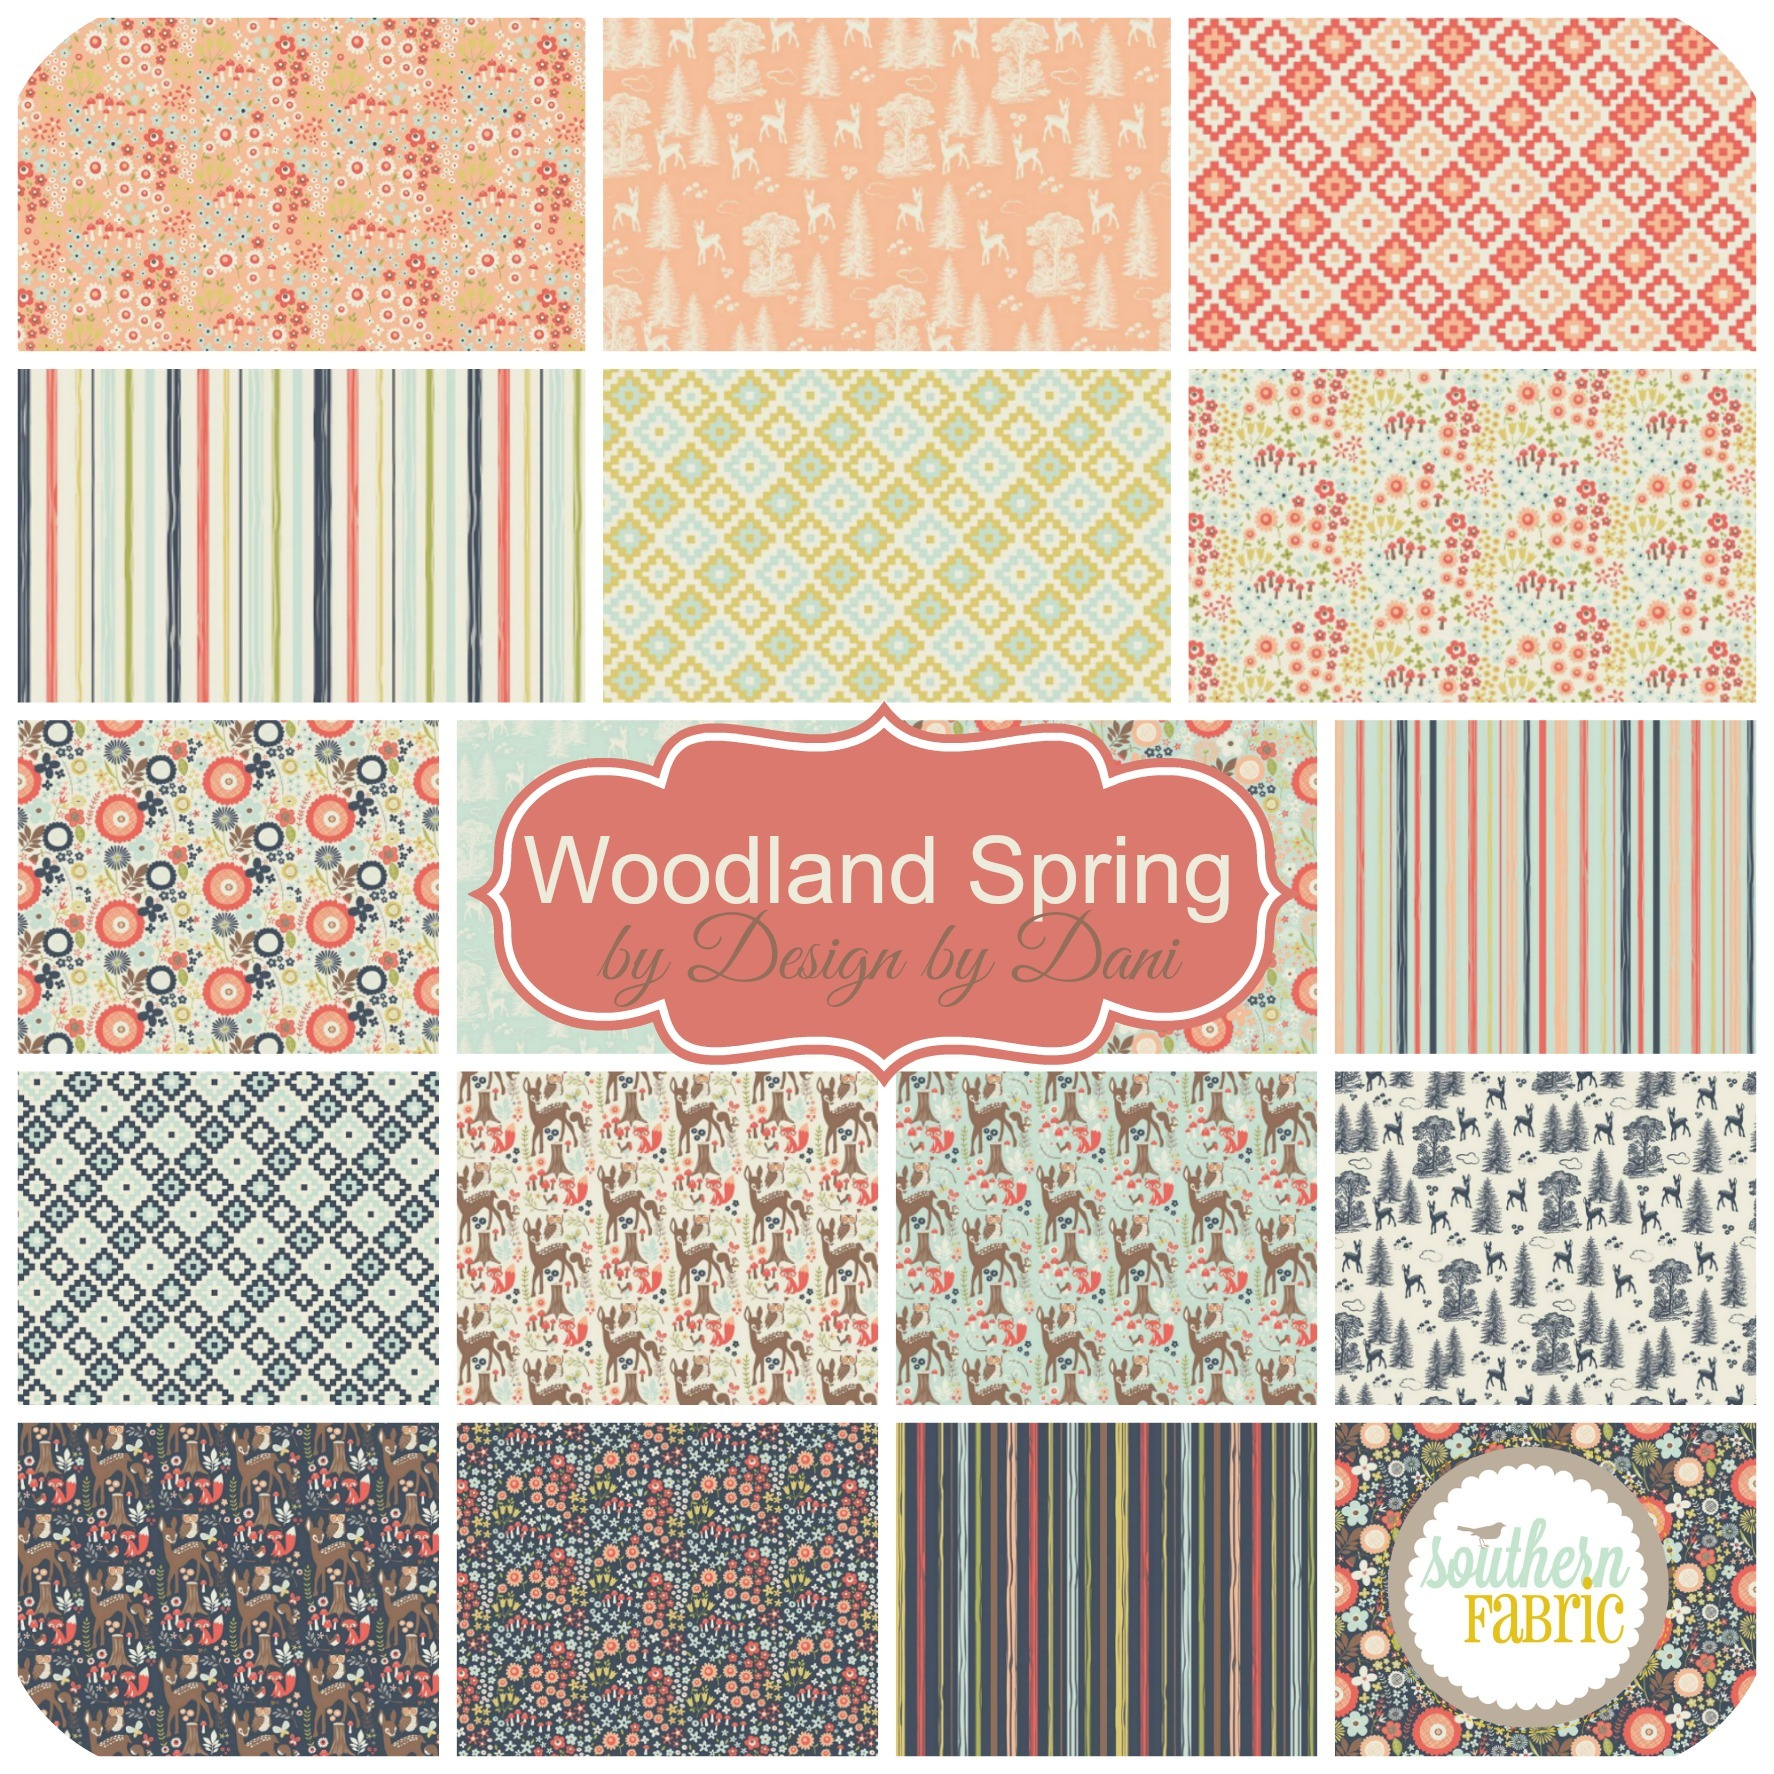 Woodland Spring by Designs by Dani